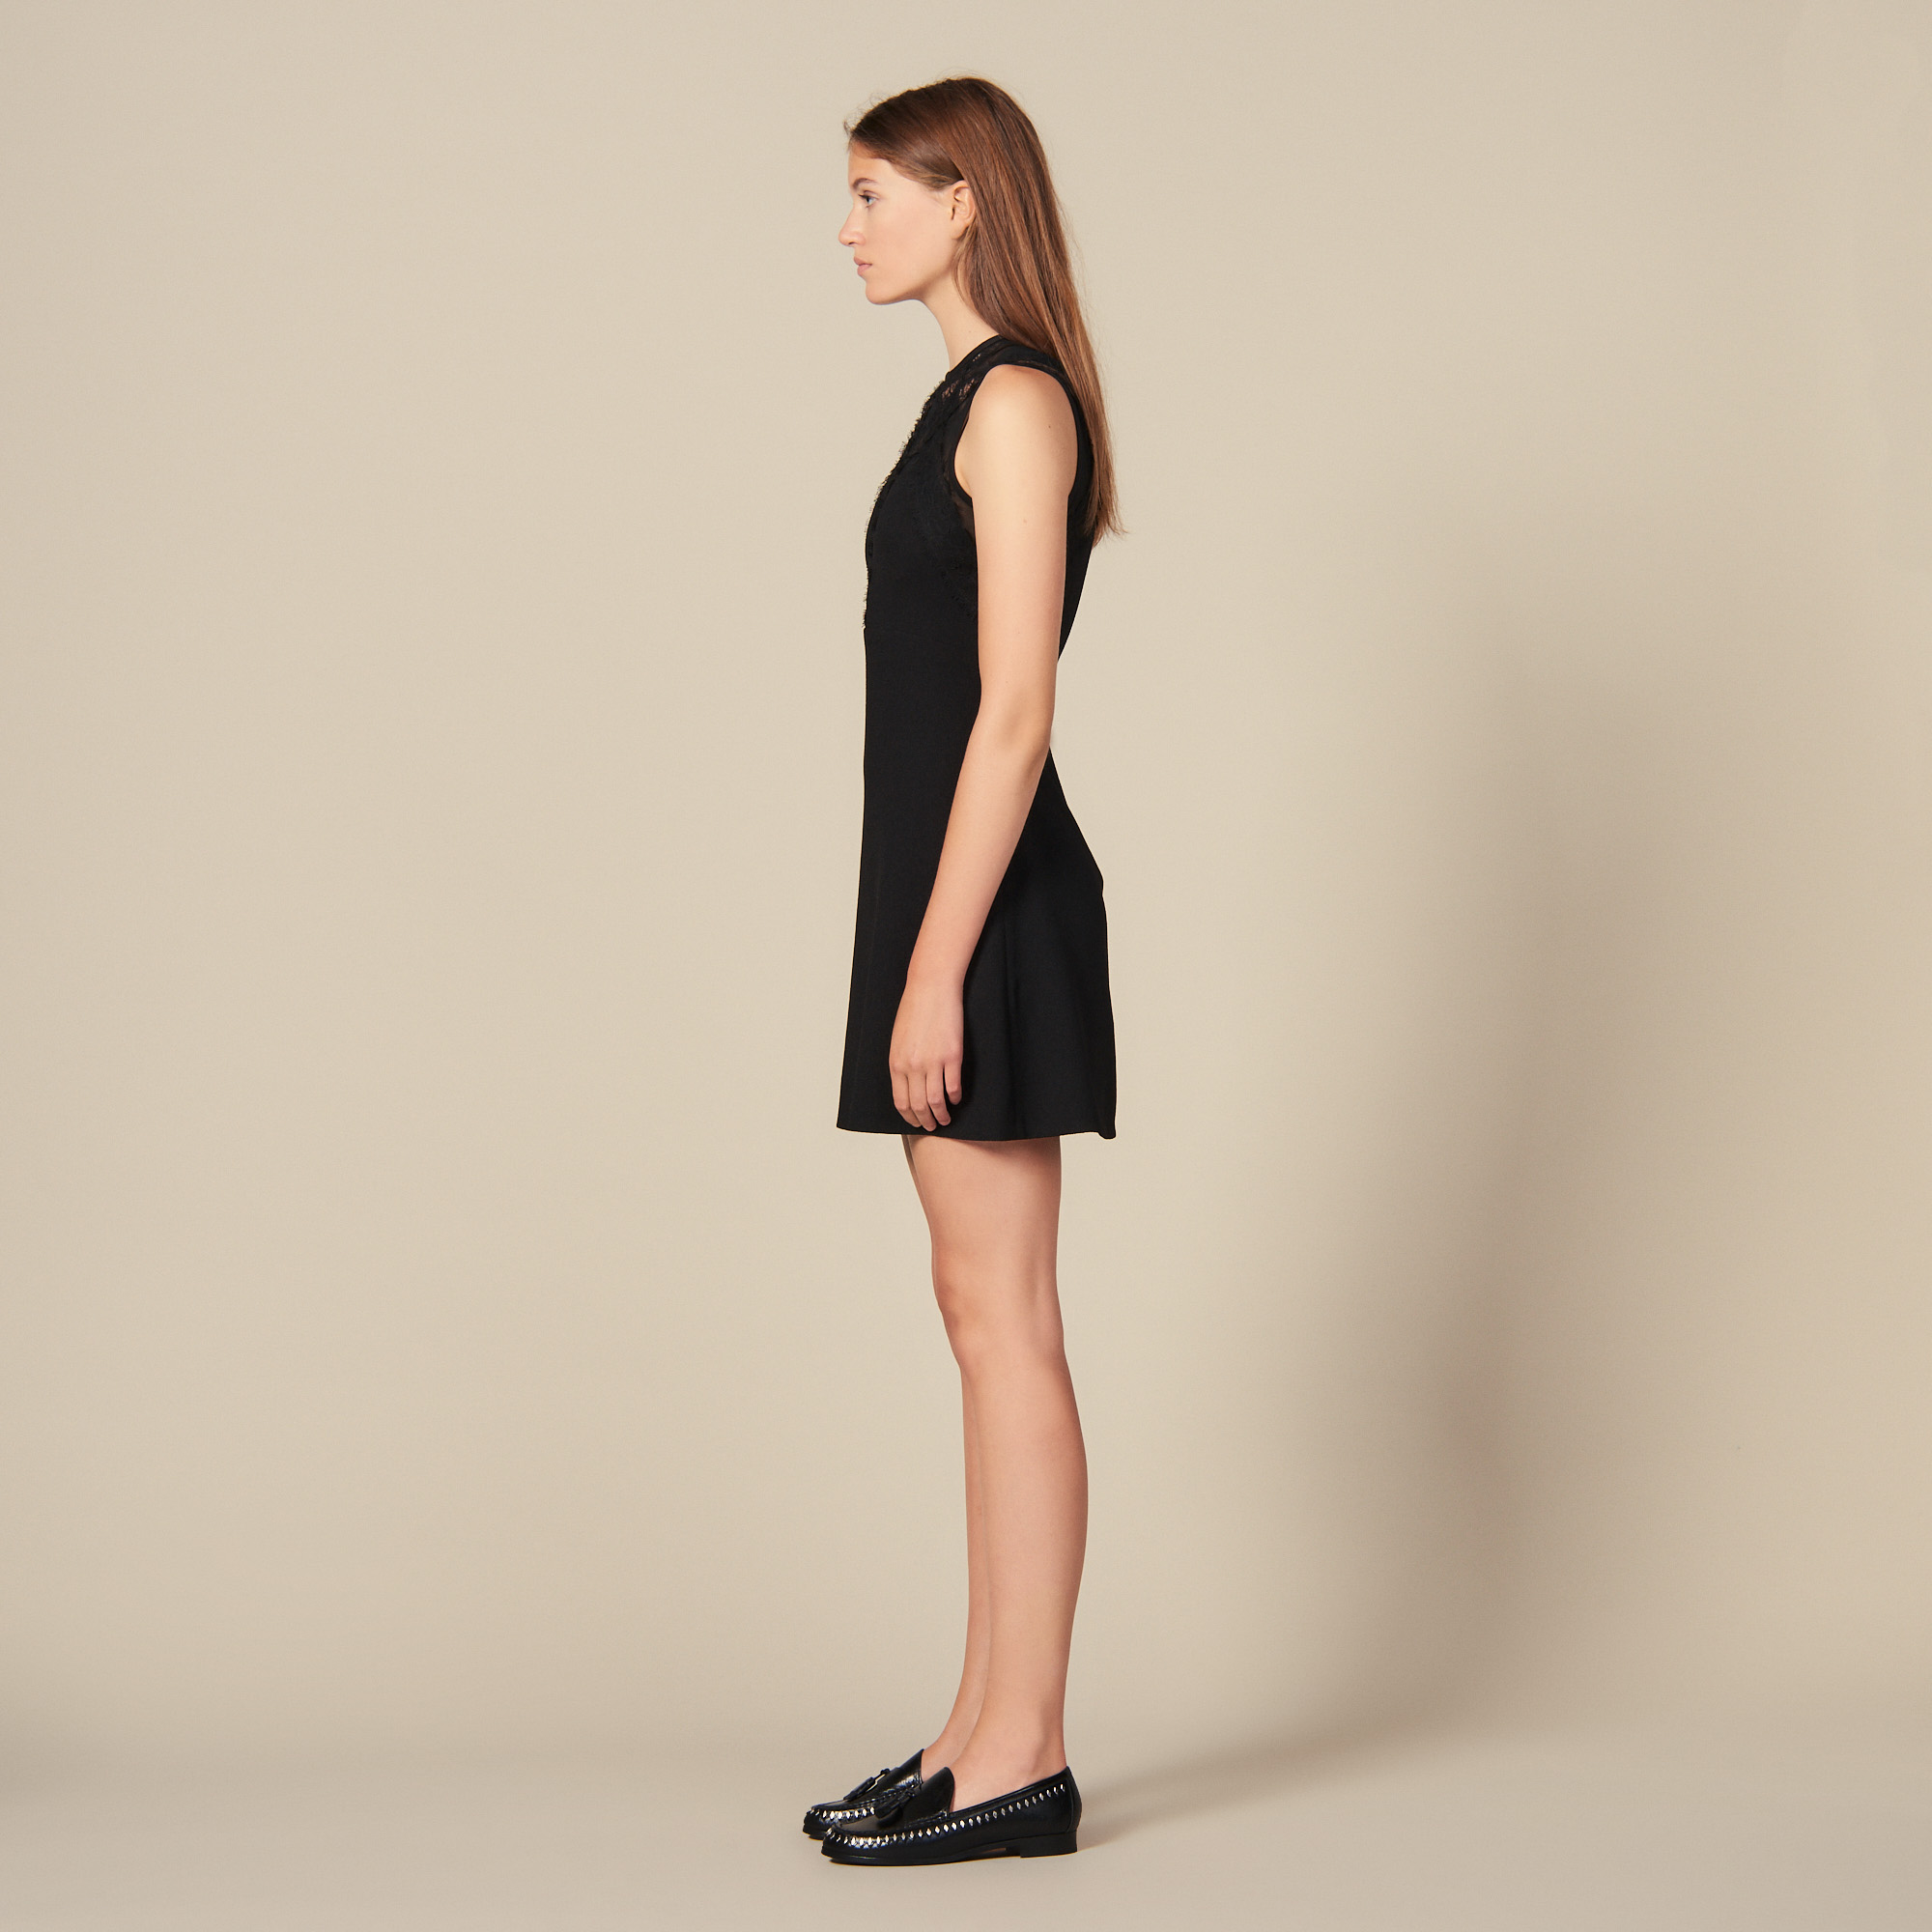 Black dress with lace inserts - Black